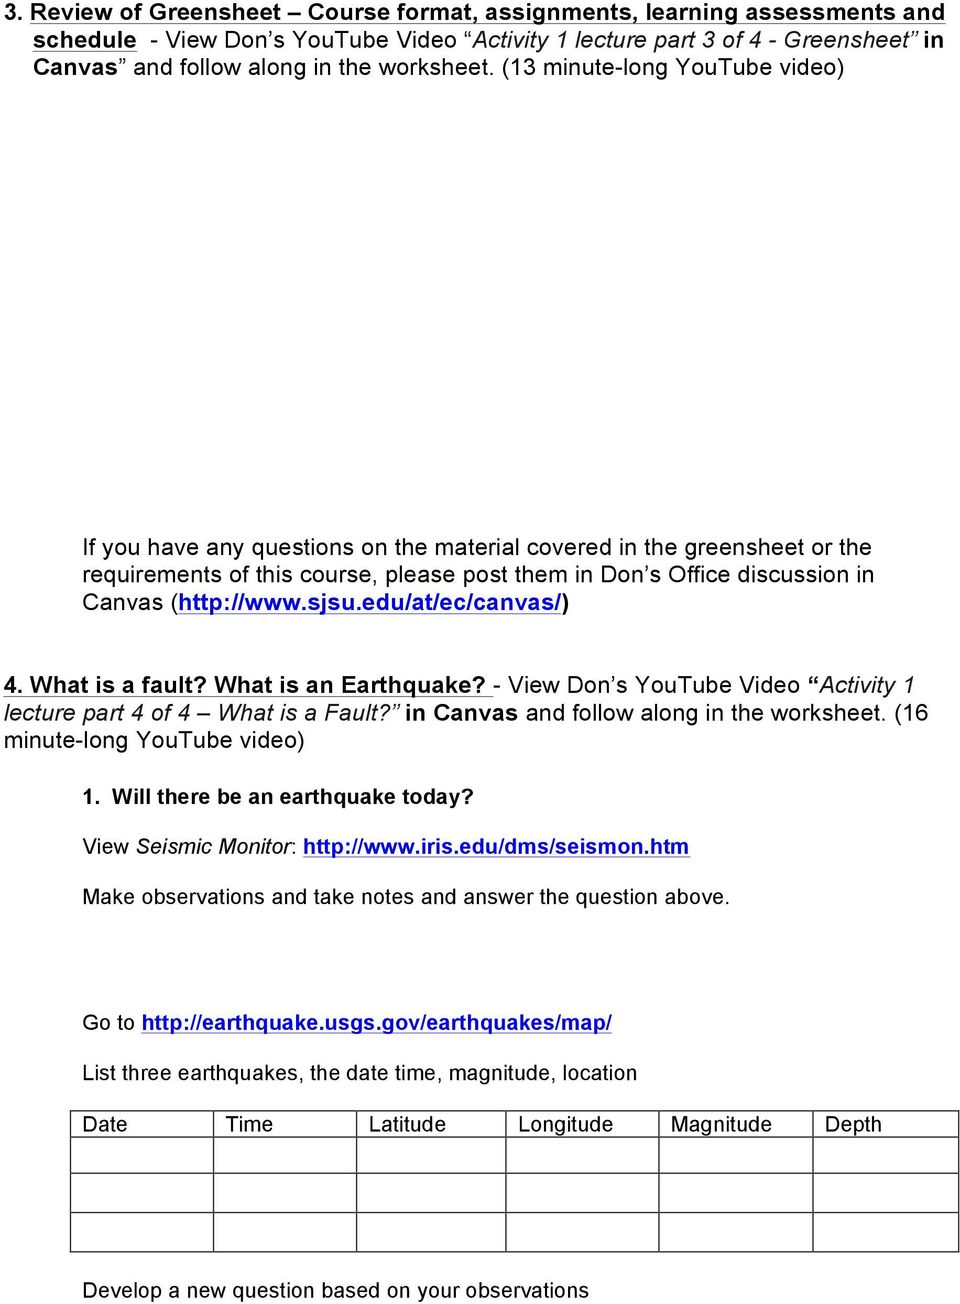 worksheet Earthquakes Worksheet geology 112 earthquakes activity 1 worksheet introduction to the 13 minute long youtube video if you have any questions on material